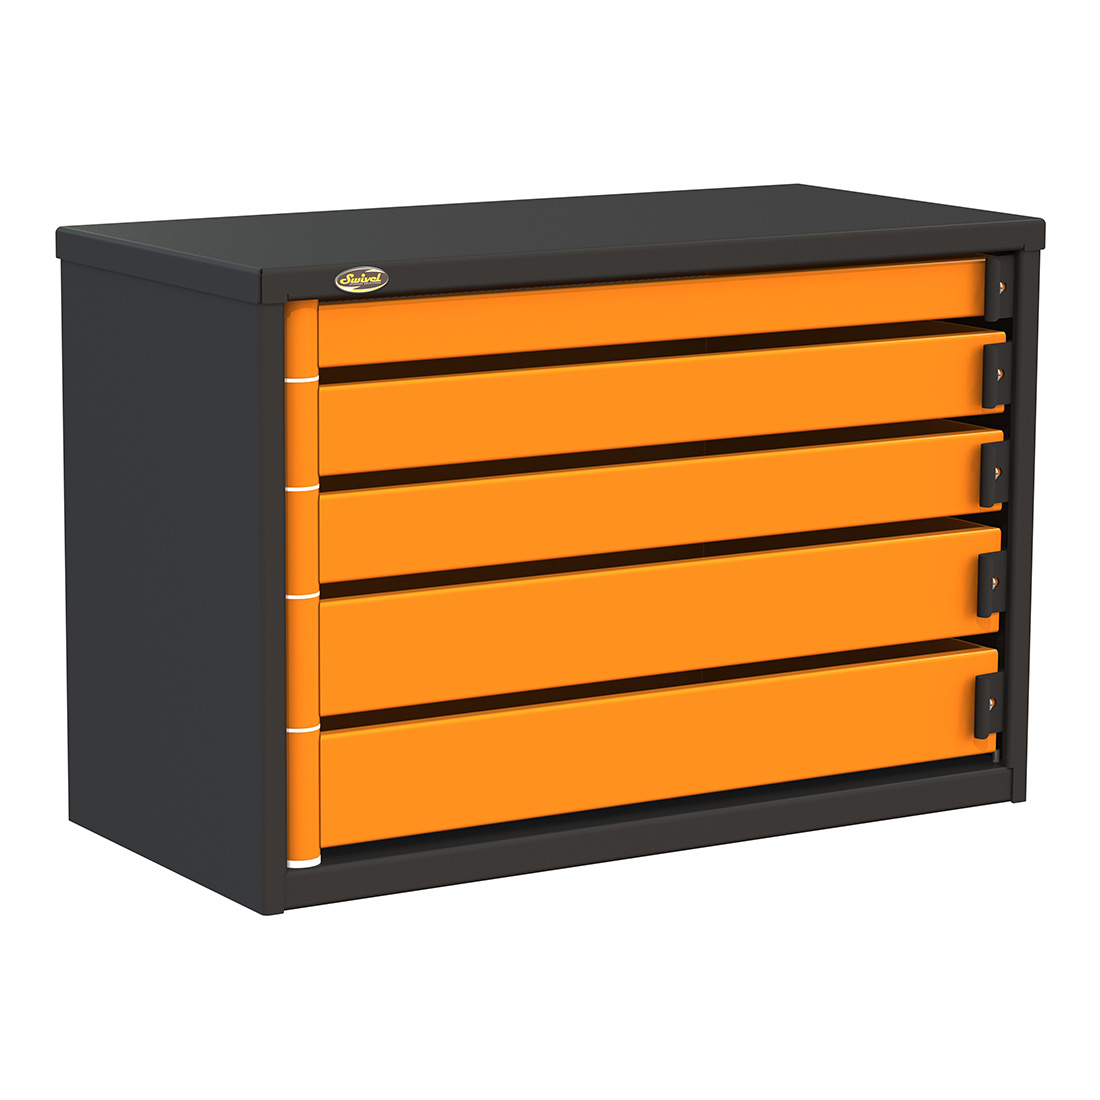 Swivel Storage Solutions PRO362405 5-Drawer 36-Inch Service Tool Box